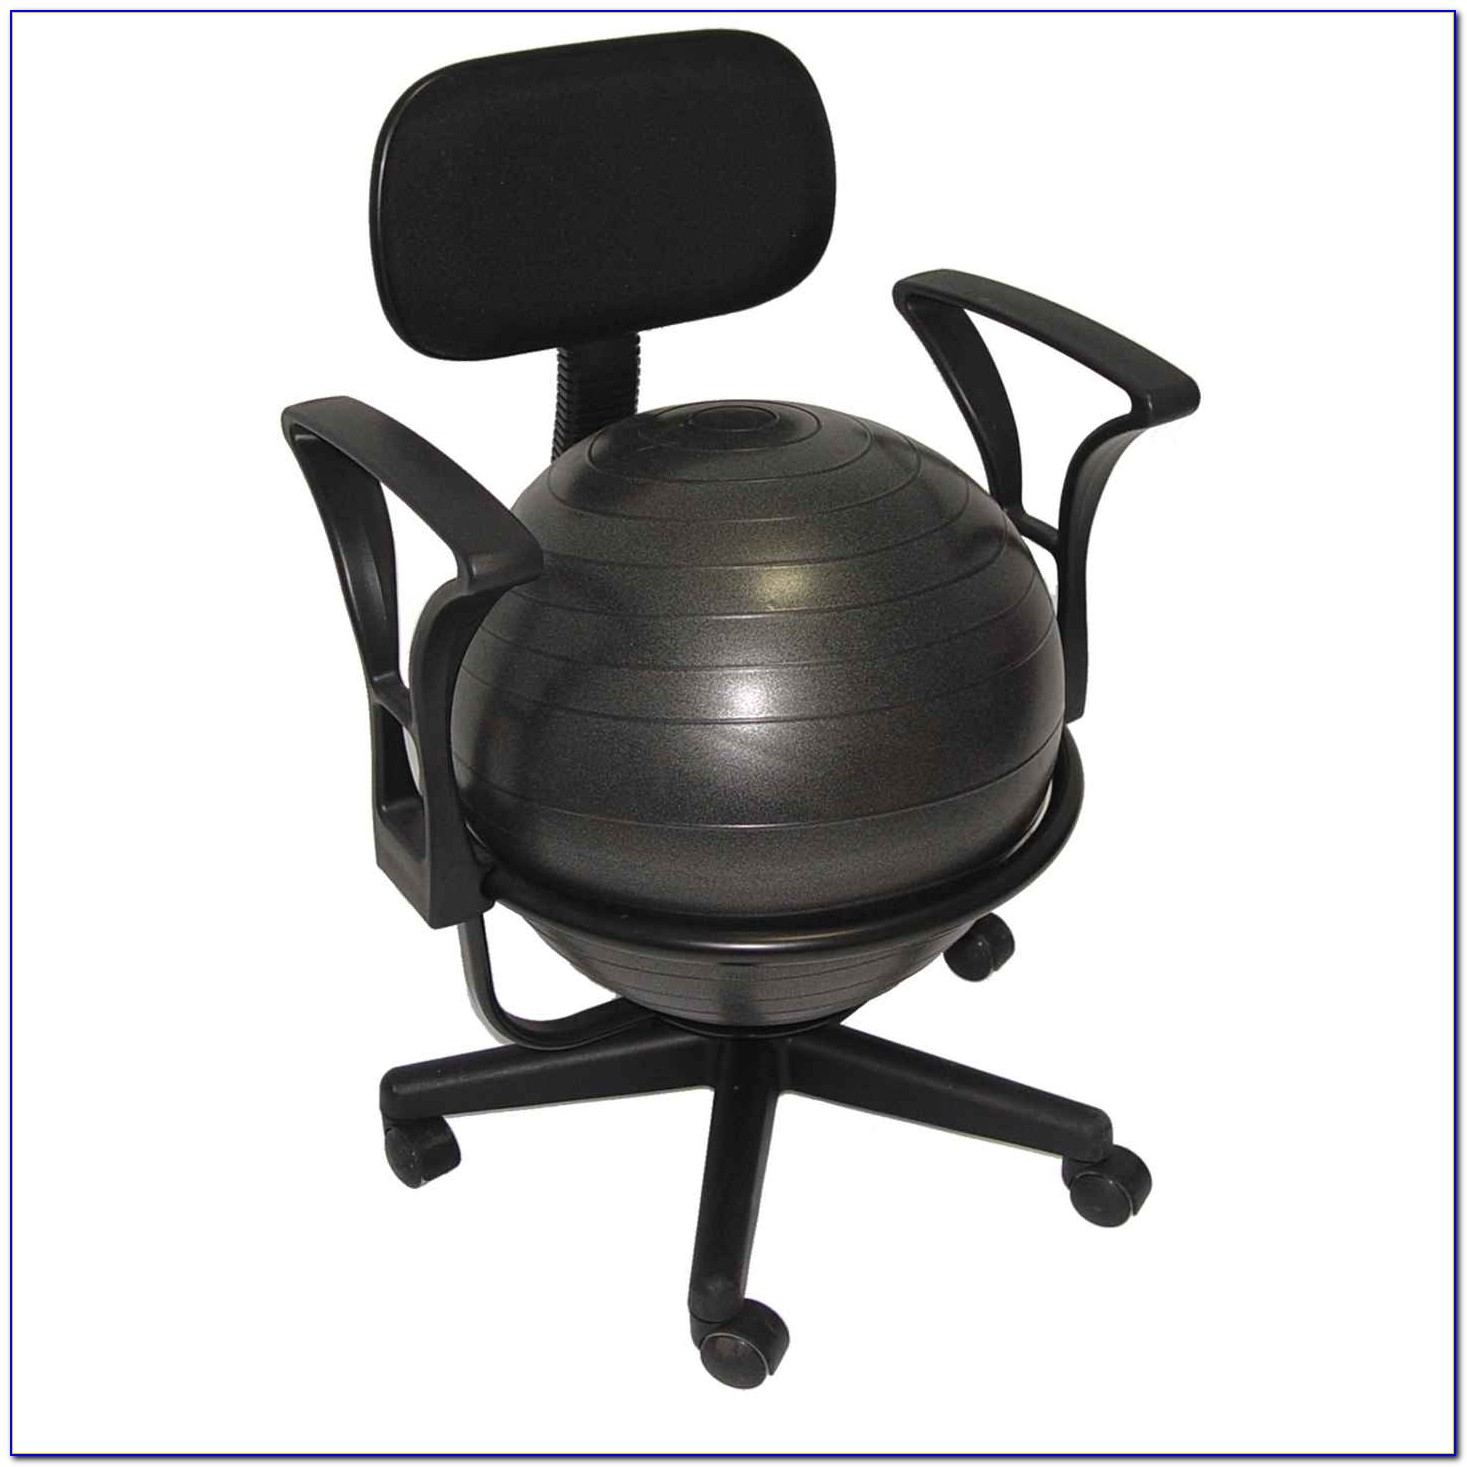 Ball Chair Benefits Ball Chair For Desk Desk Home Design Ideas